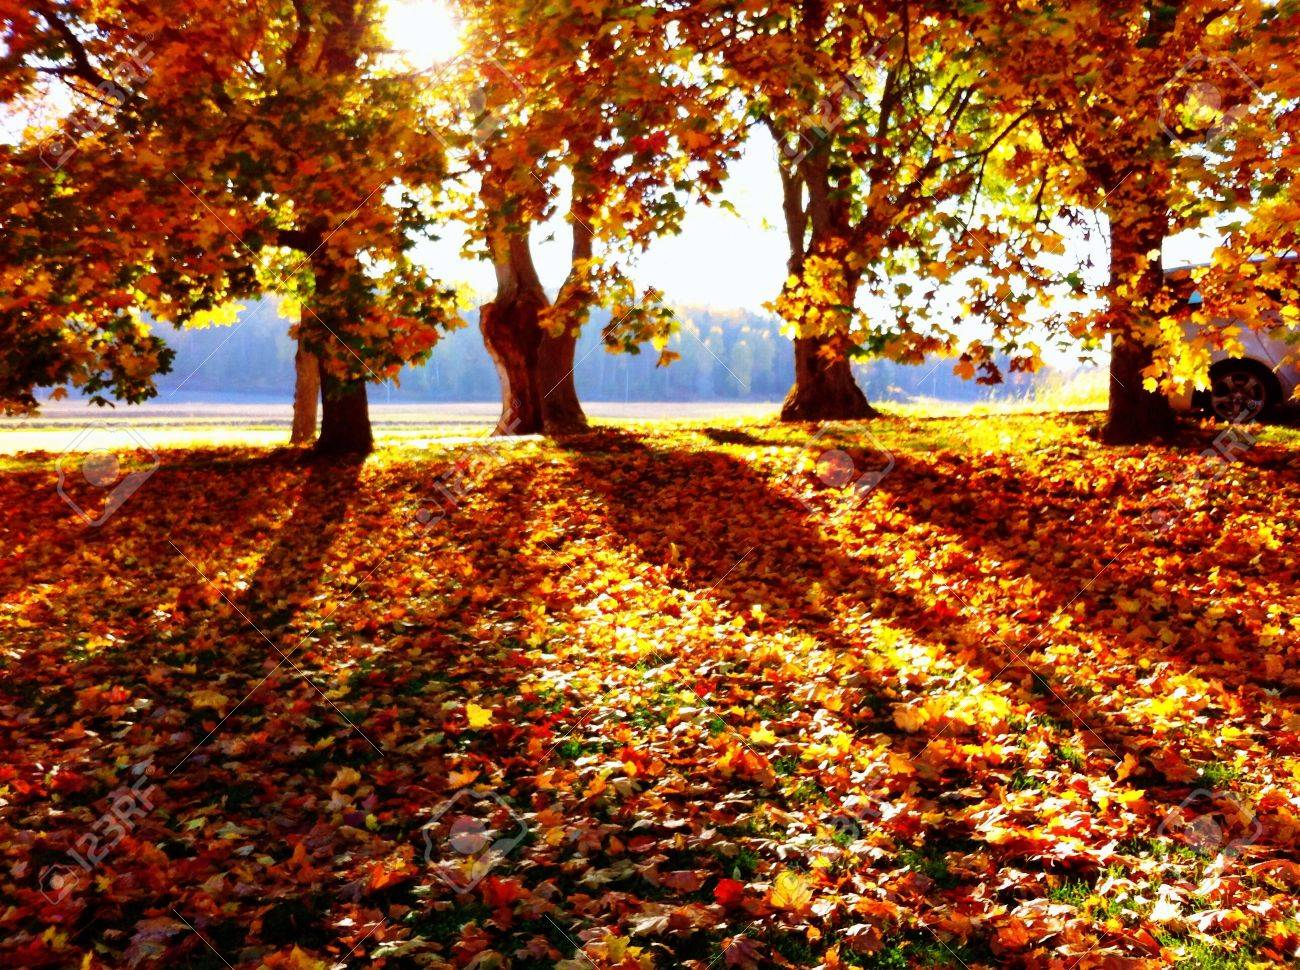 Fall Leaves And Shadow Pictures Of The Trees Stock Photo Picture And Royalty Free Image Image 22810590